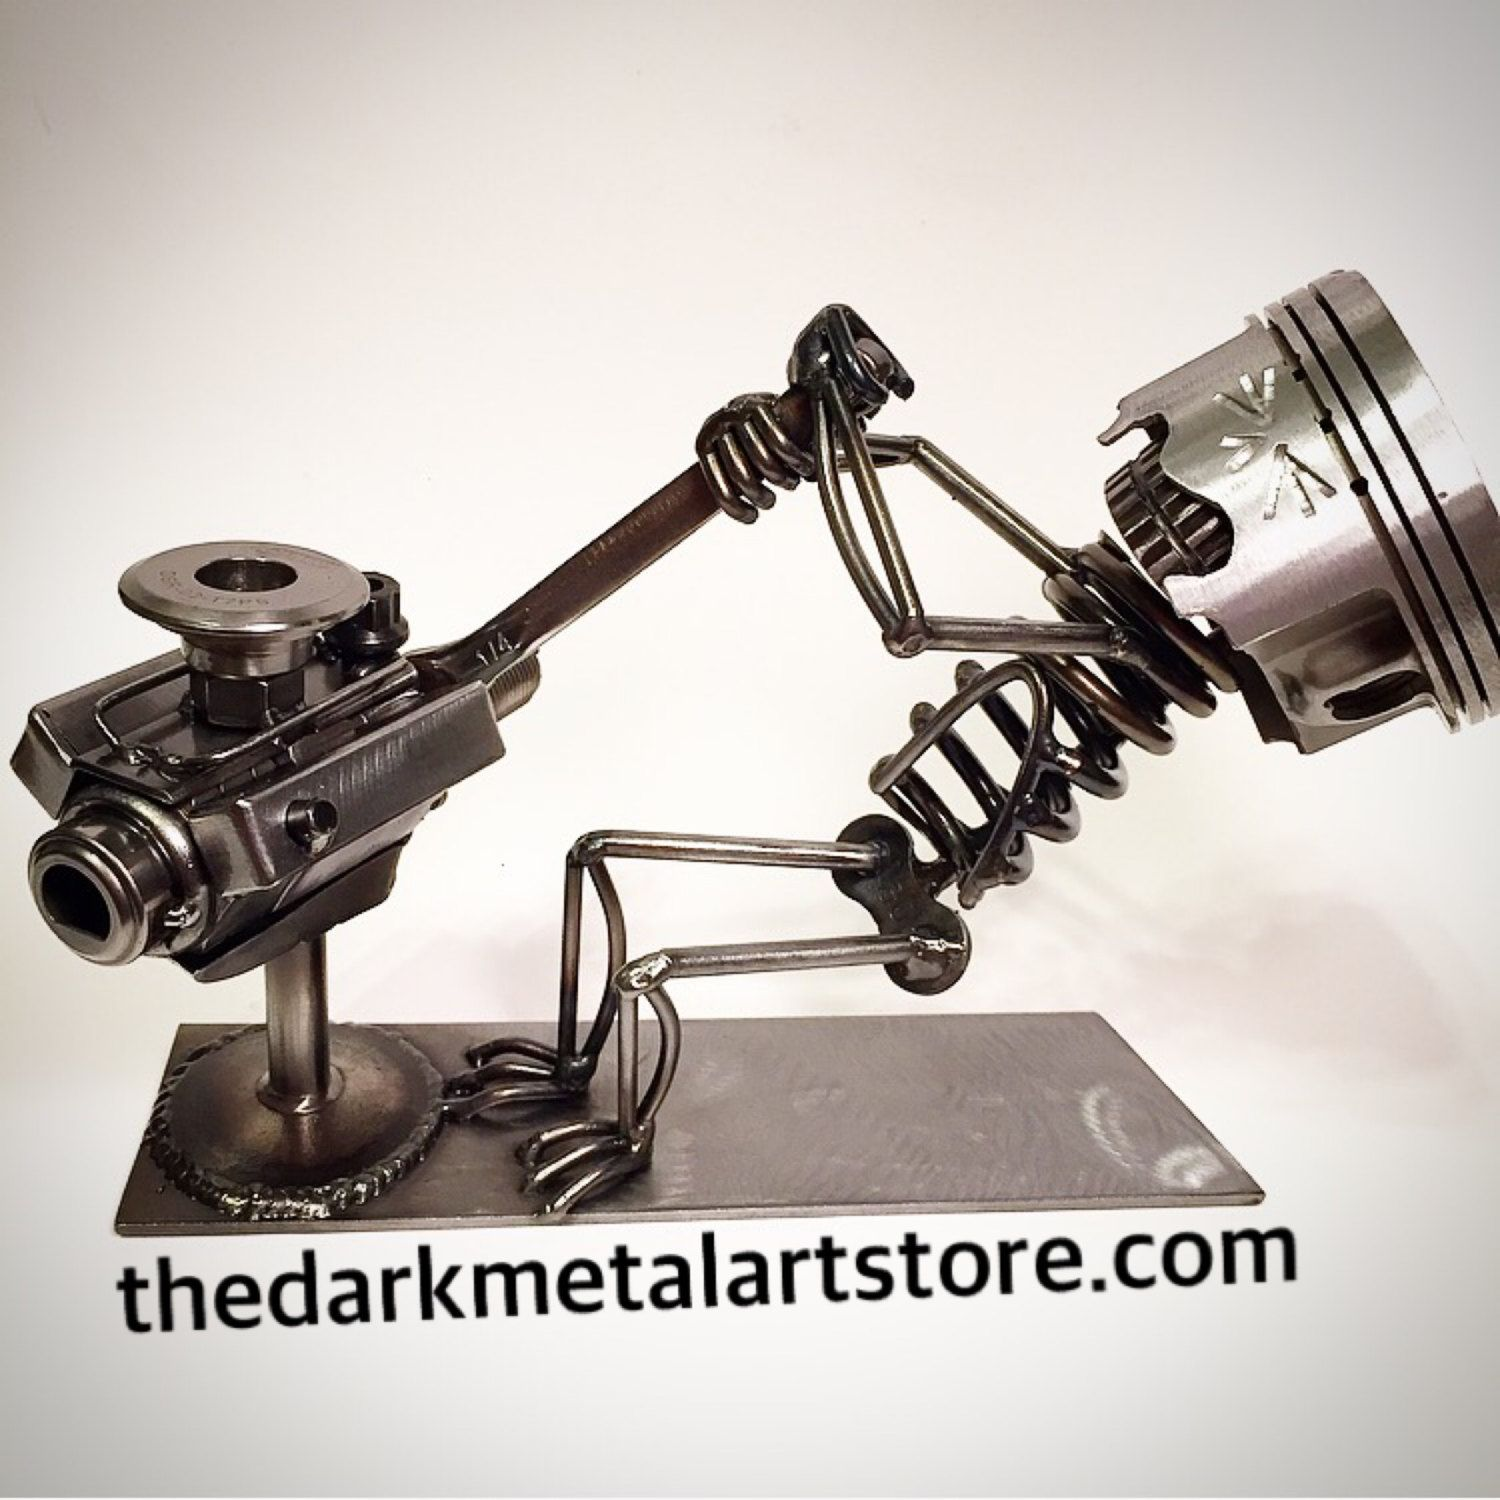 image result for metal art autoart pinterest searching